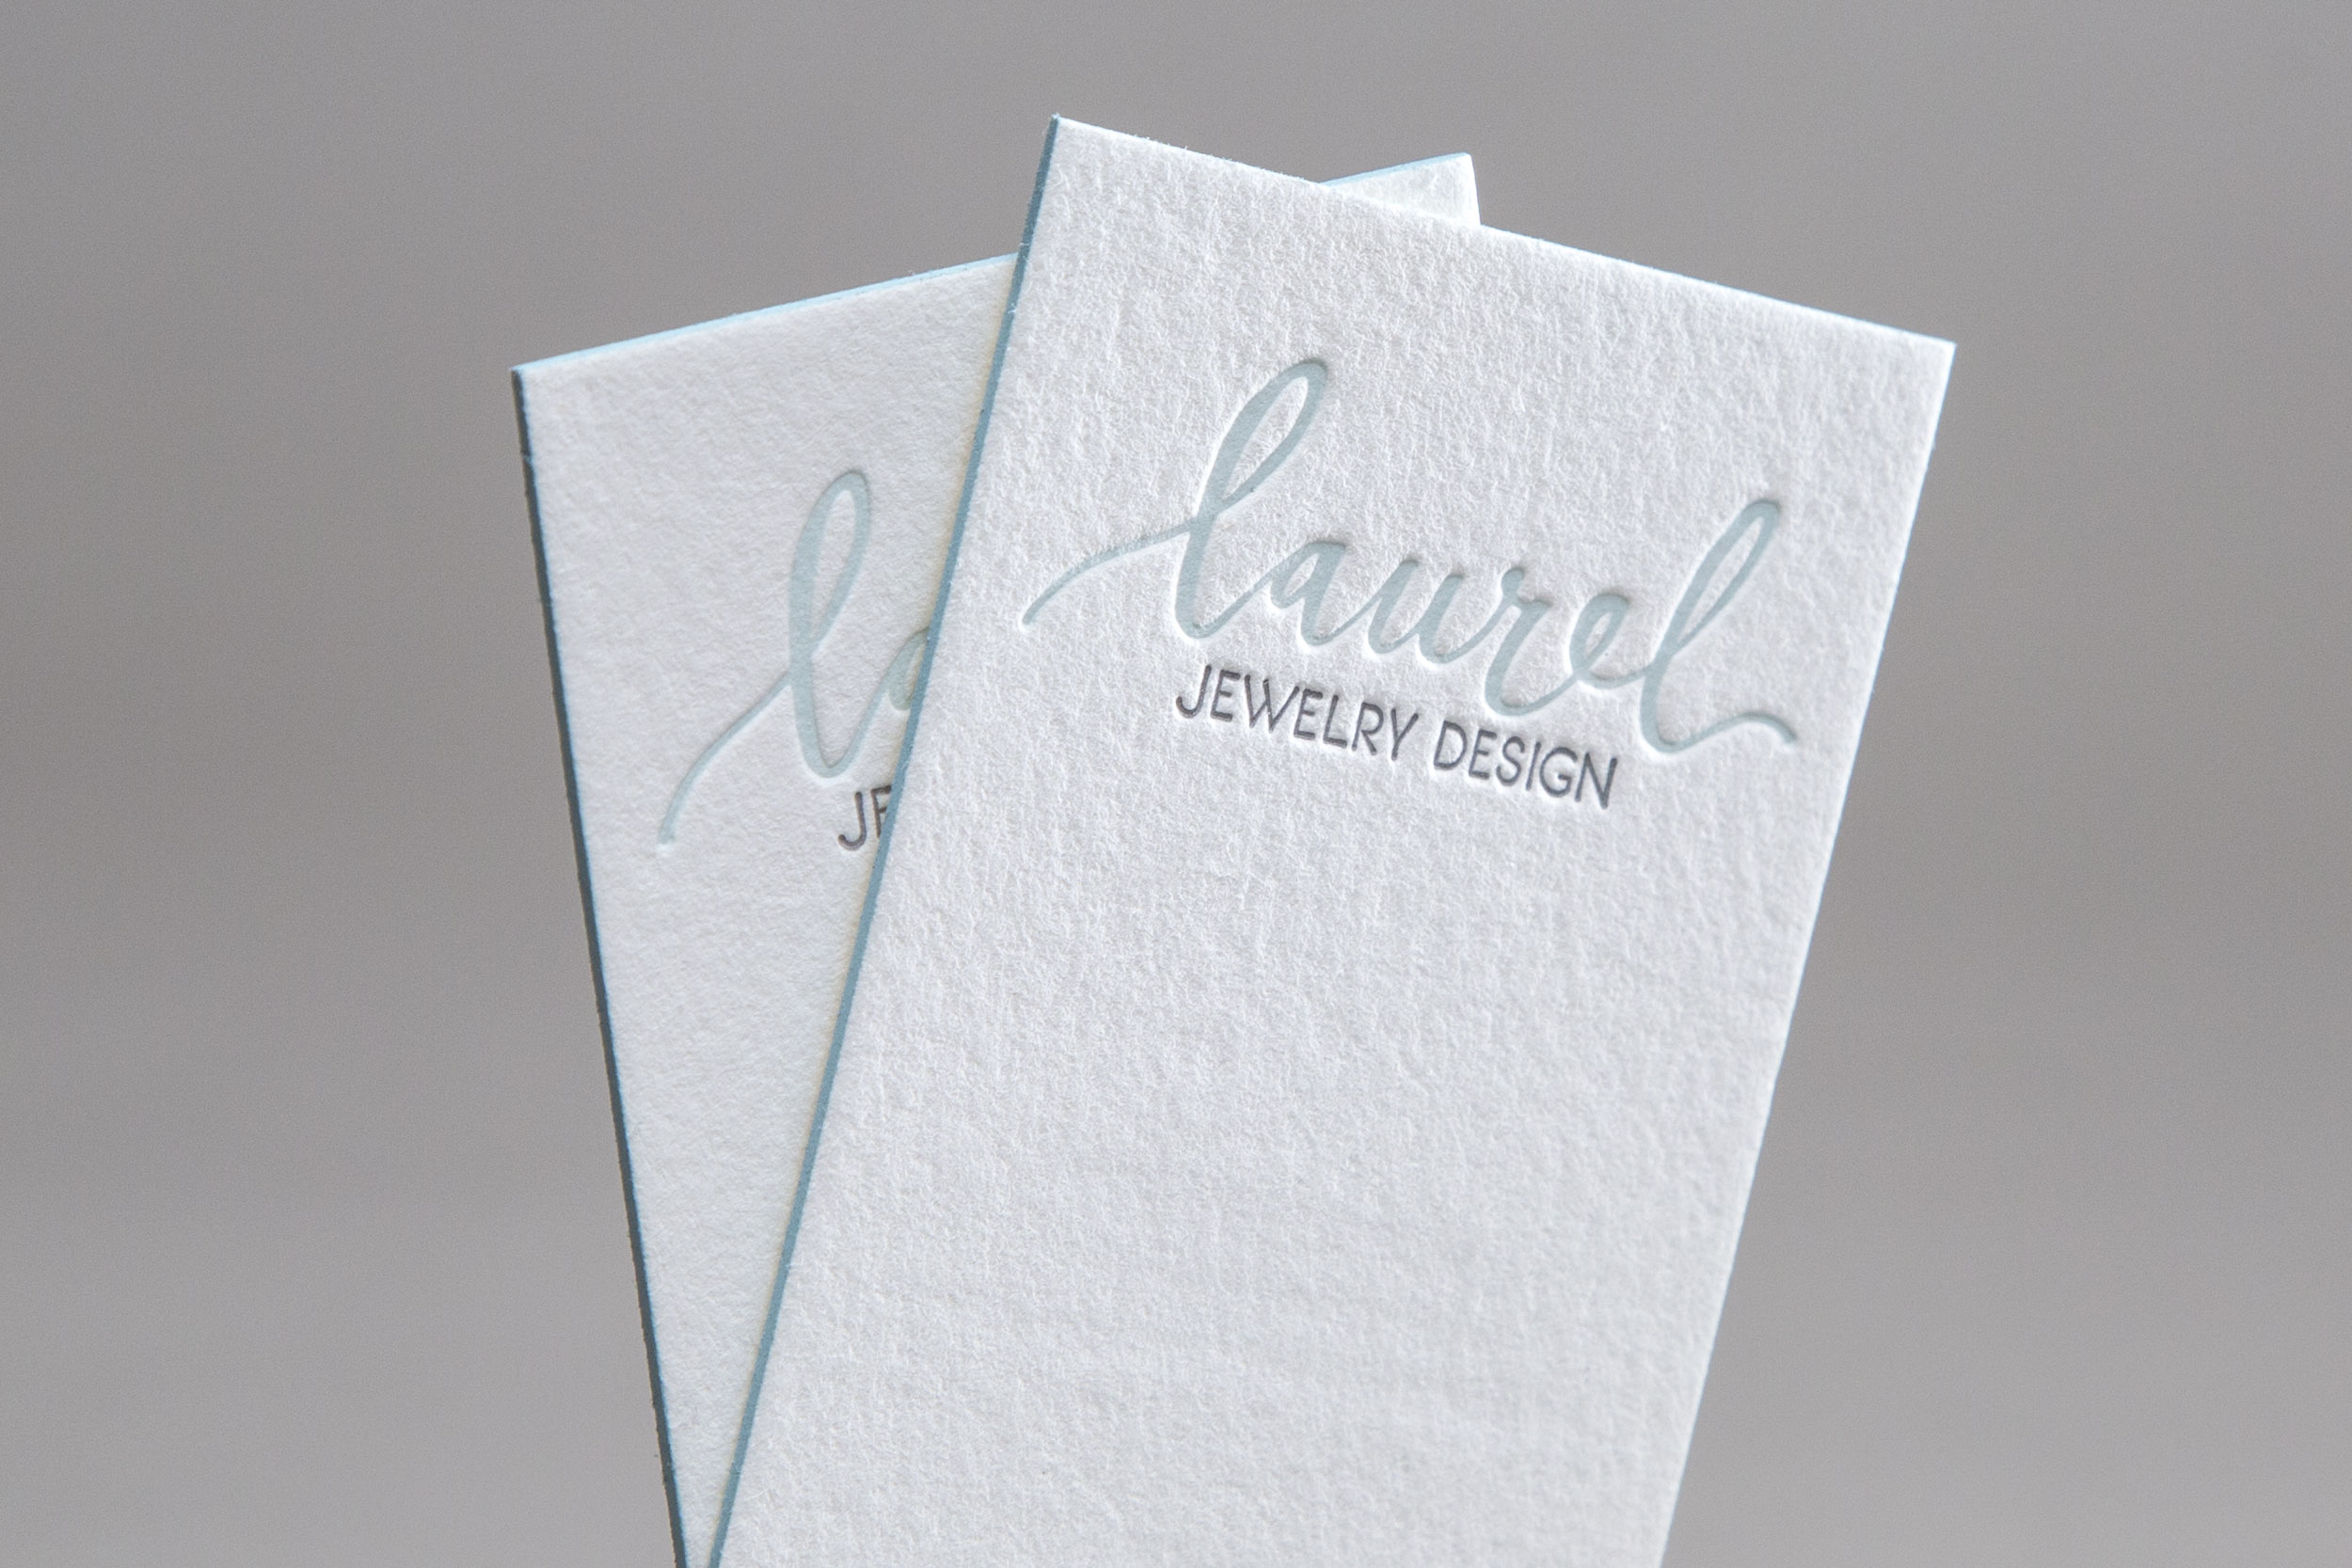 Letterpress business cards with edge printing created by hand for Laurel Jewelry Design.